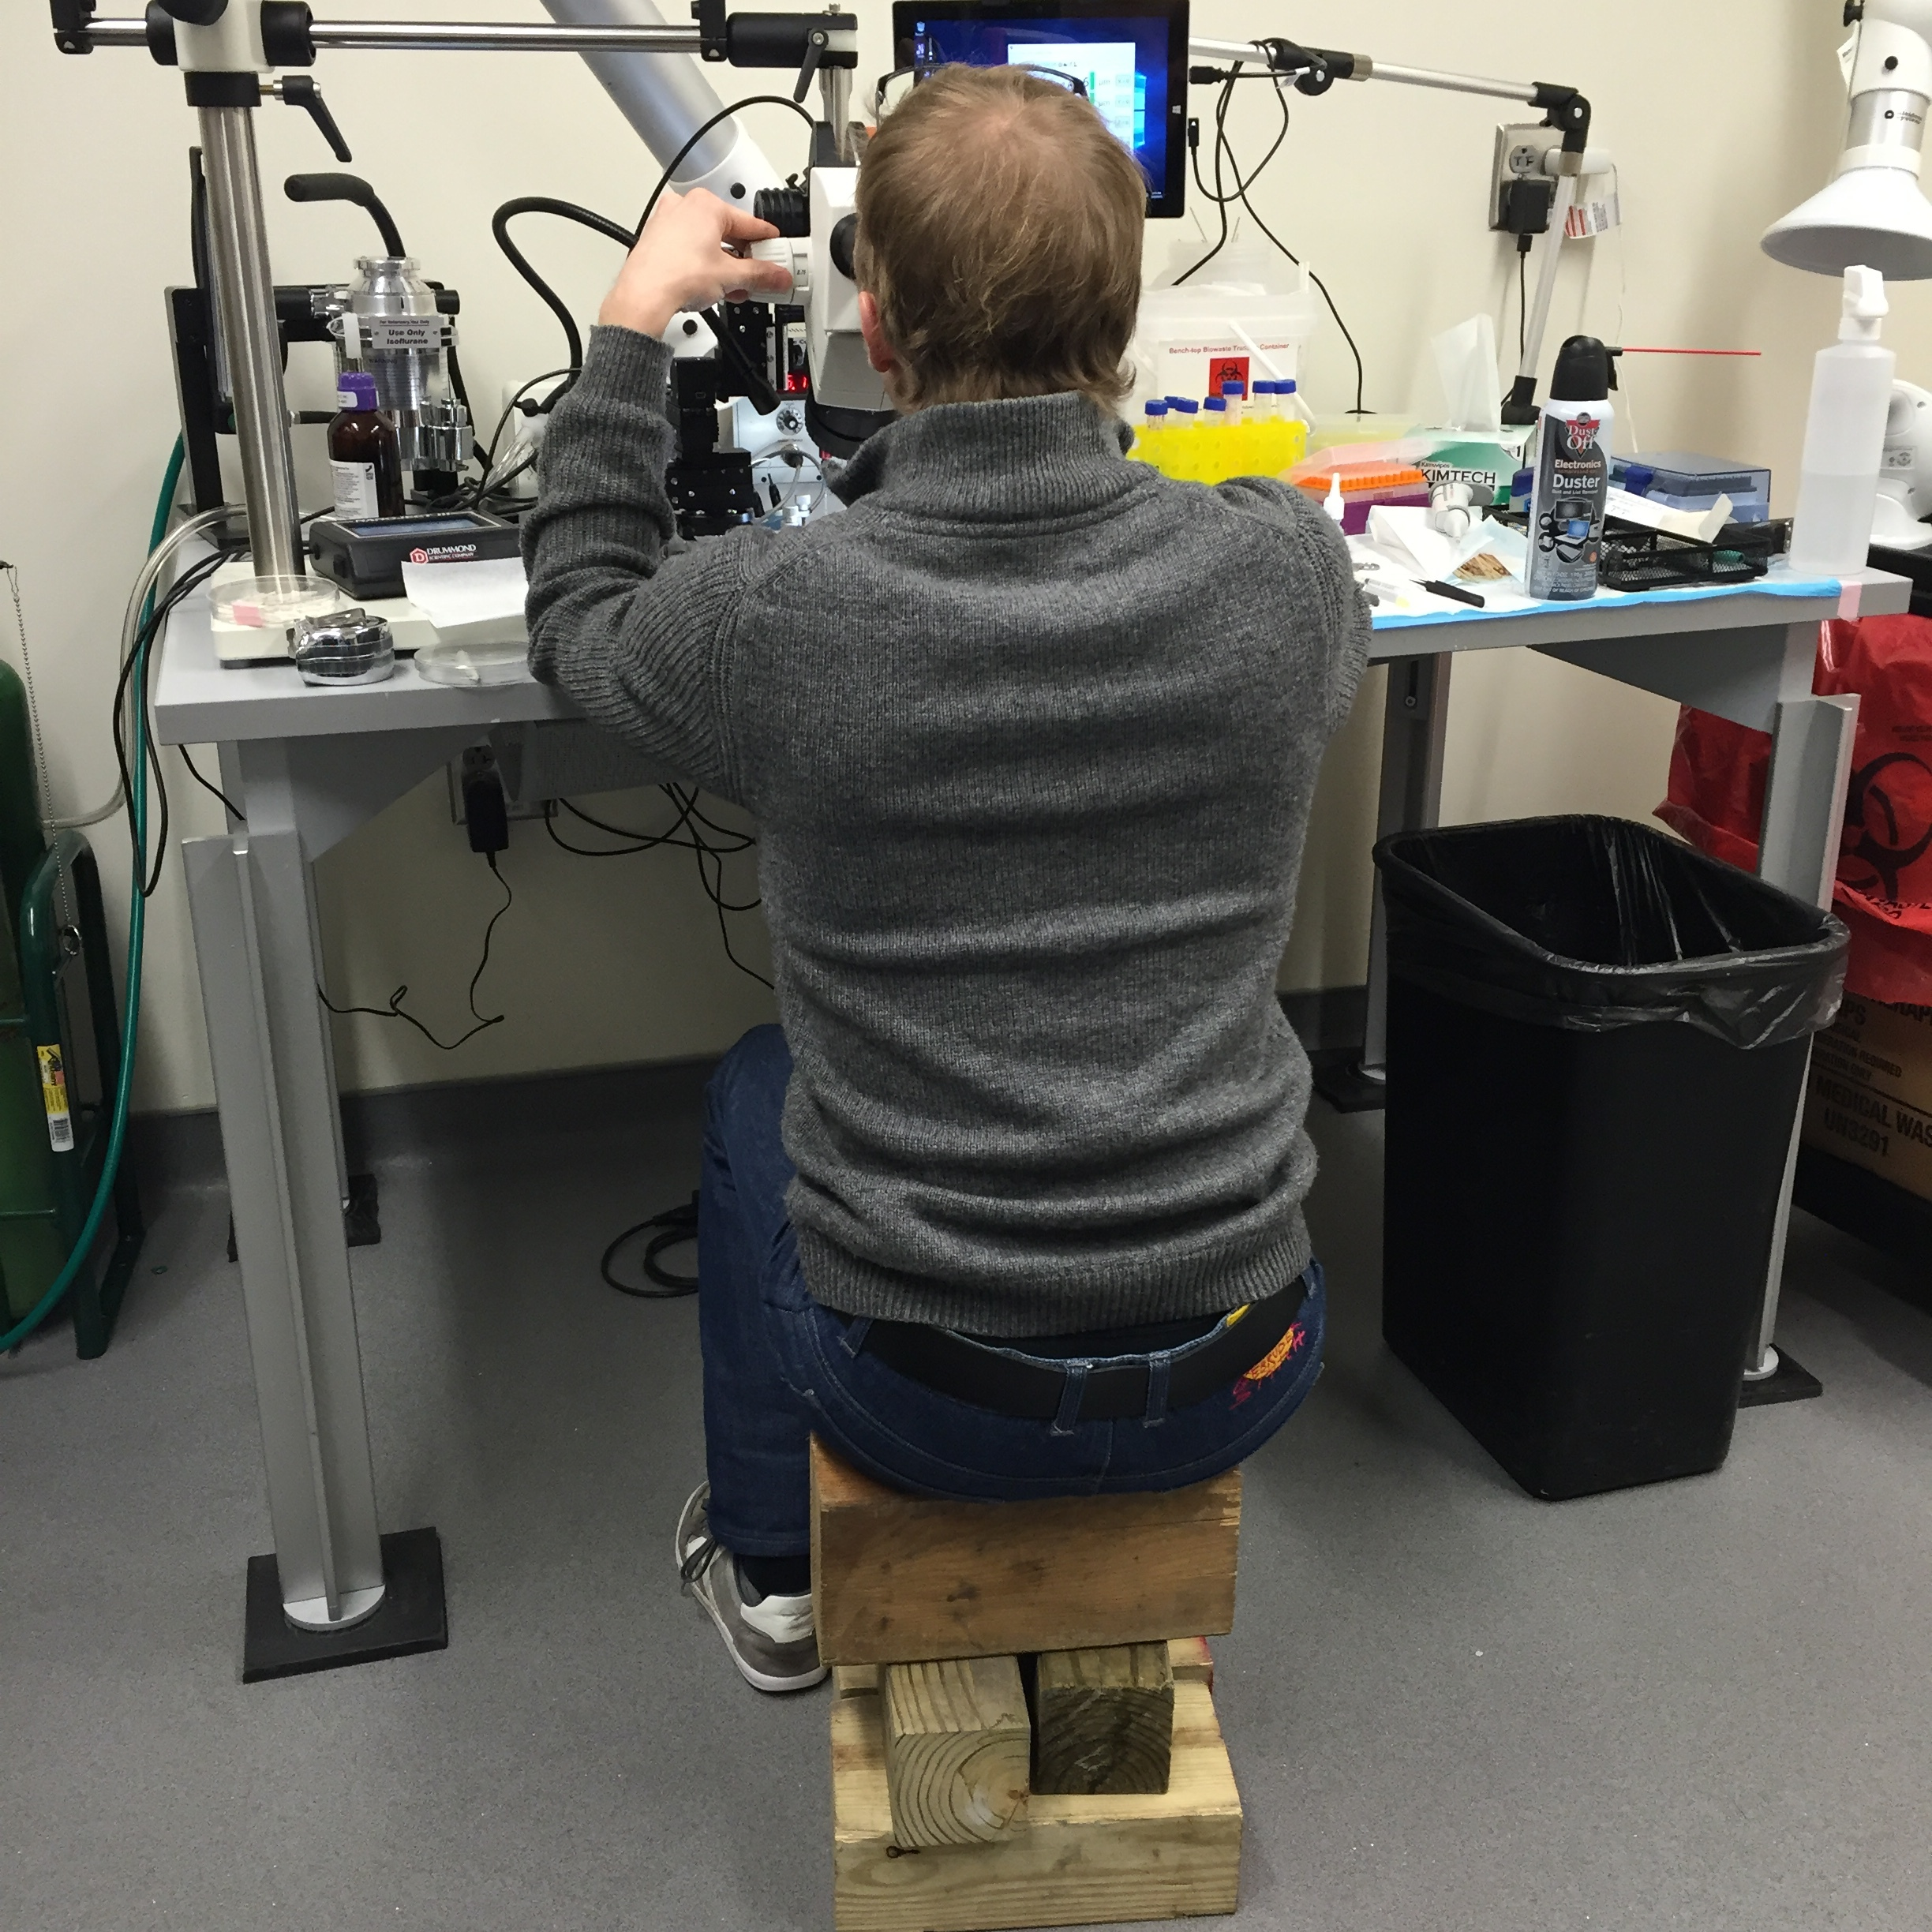 High tech seating solution to angled surgical scope eyepieces.